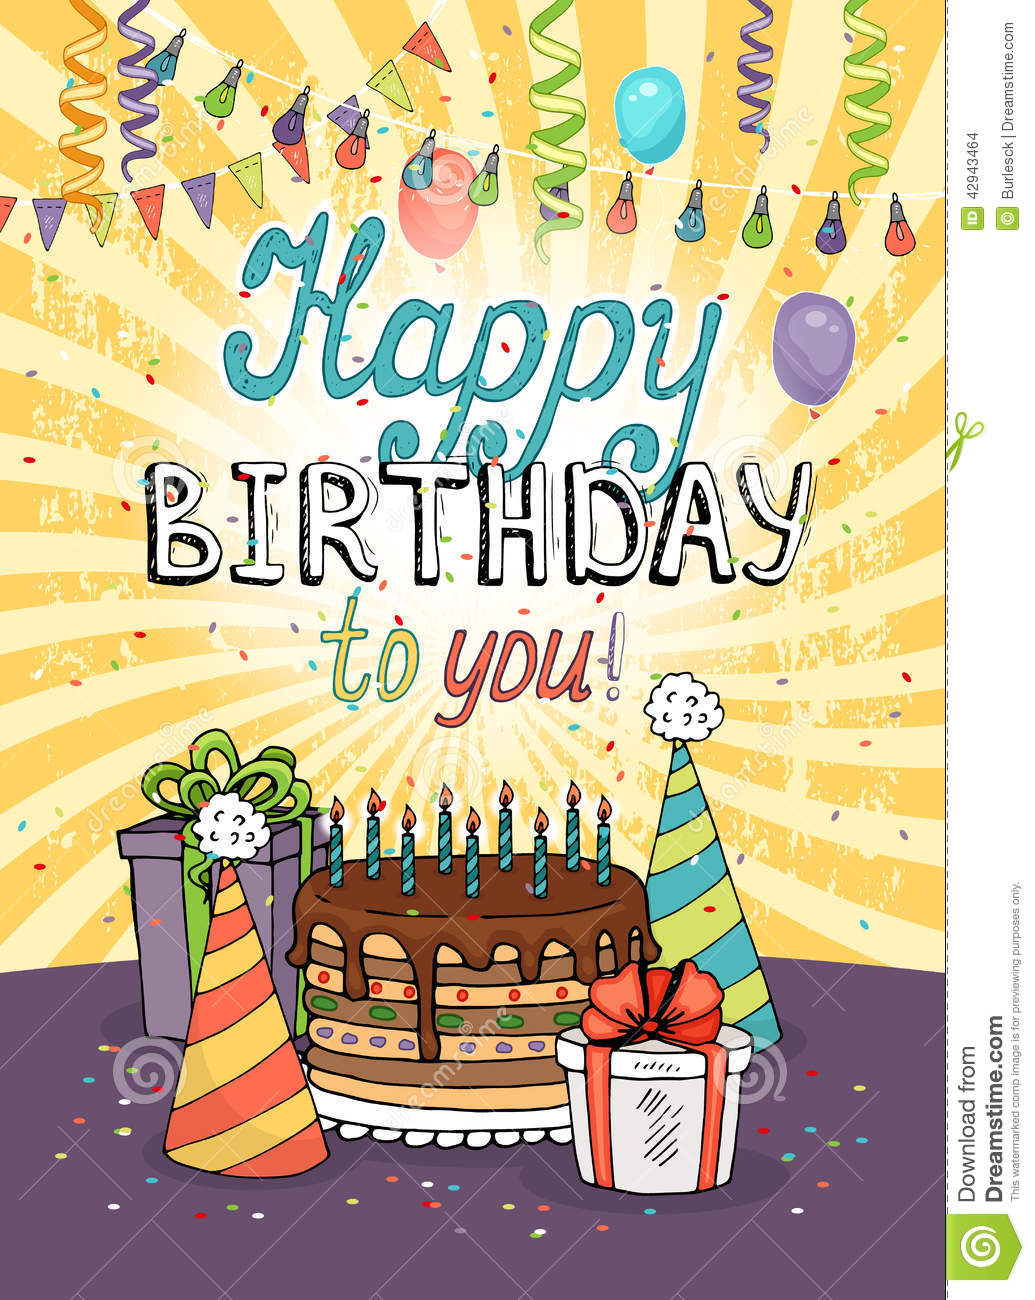 Happy birthday greeting card or invitation stock vector happy birthday greeting card or invitation kristyandbryce Image collections